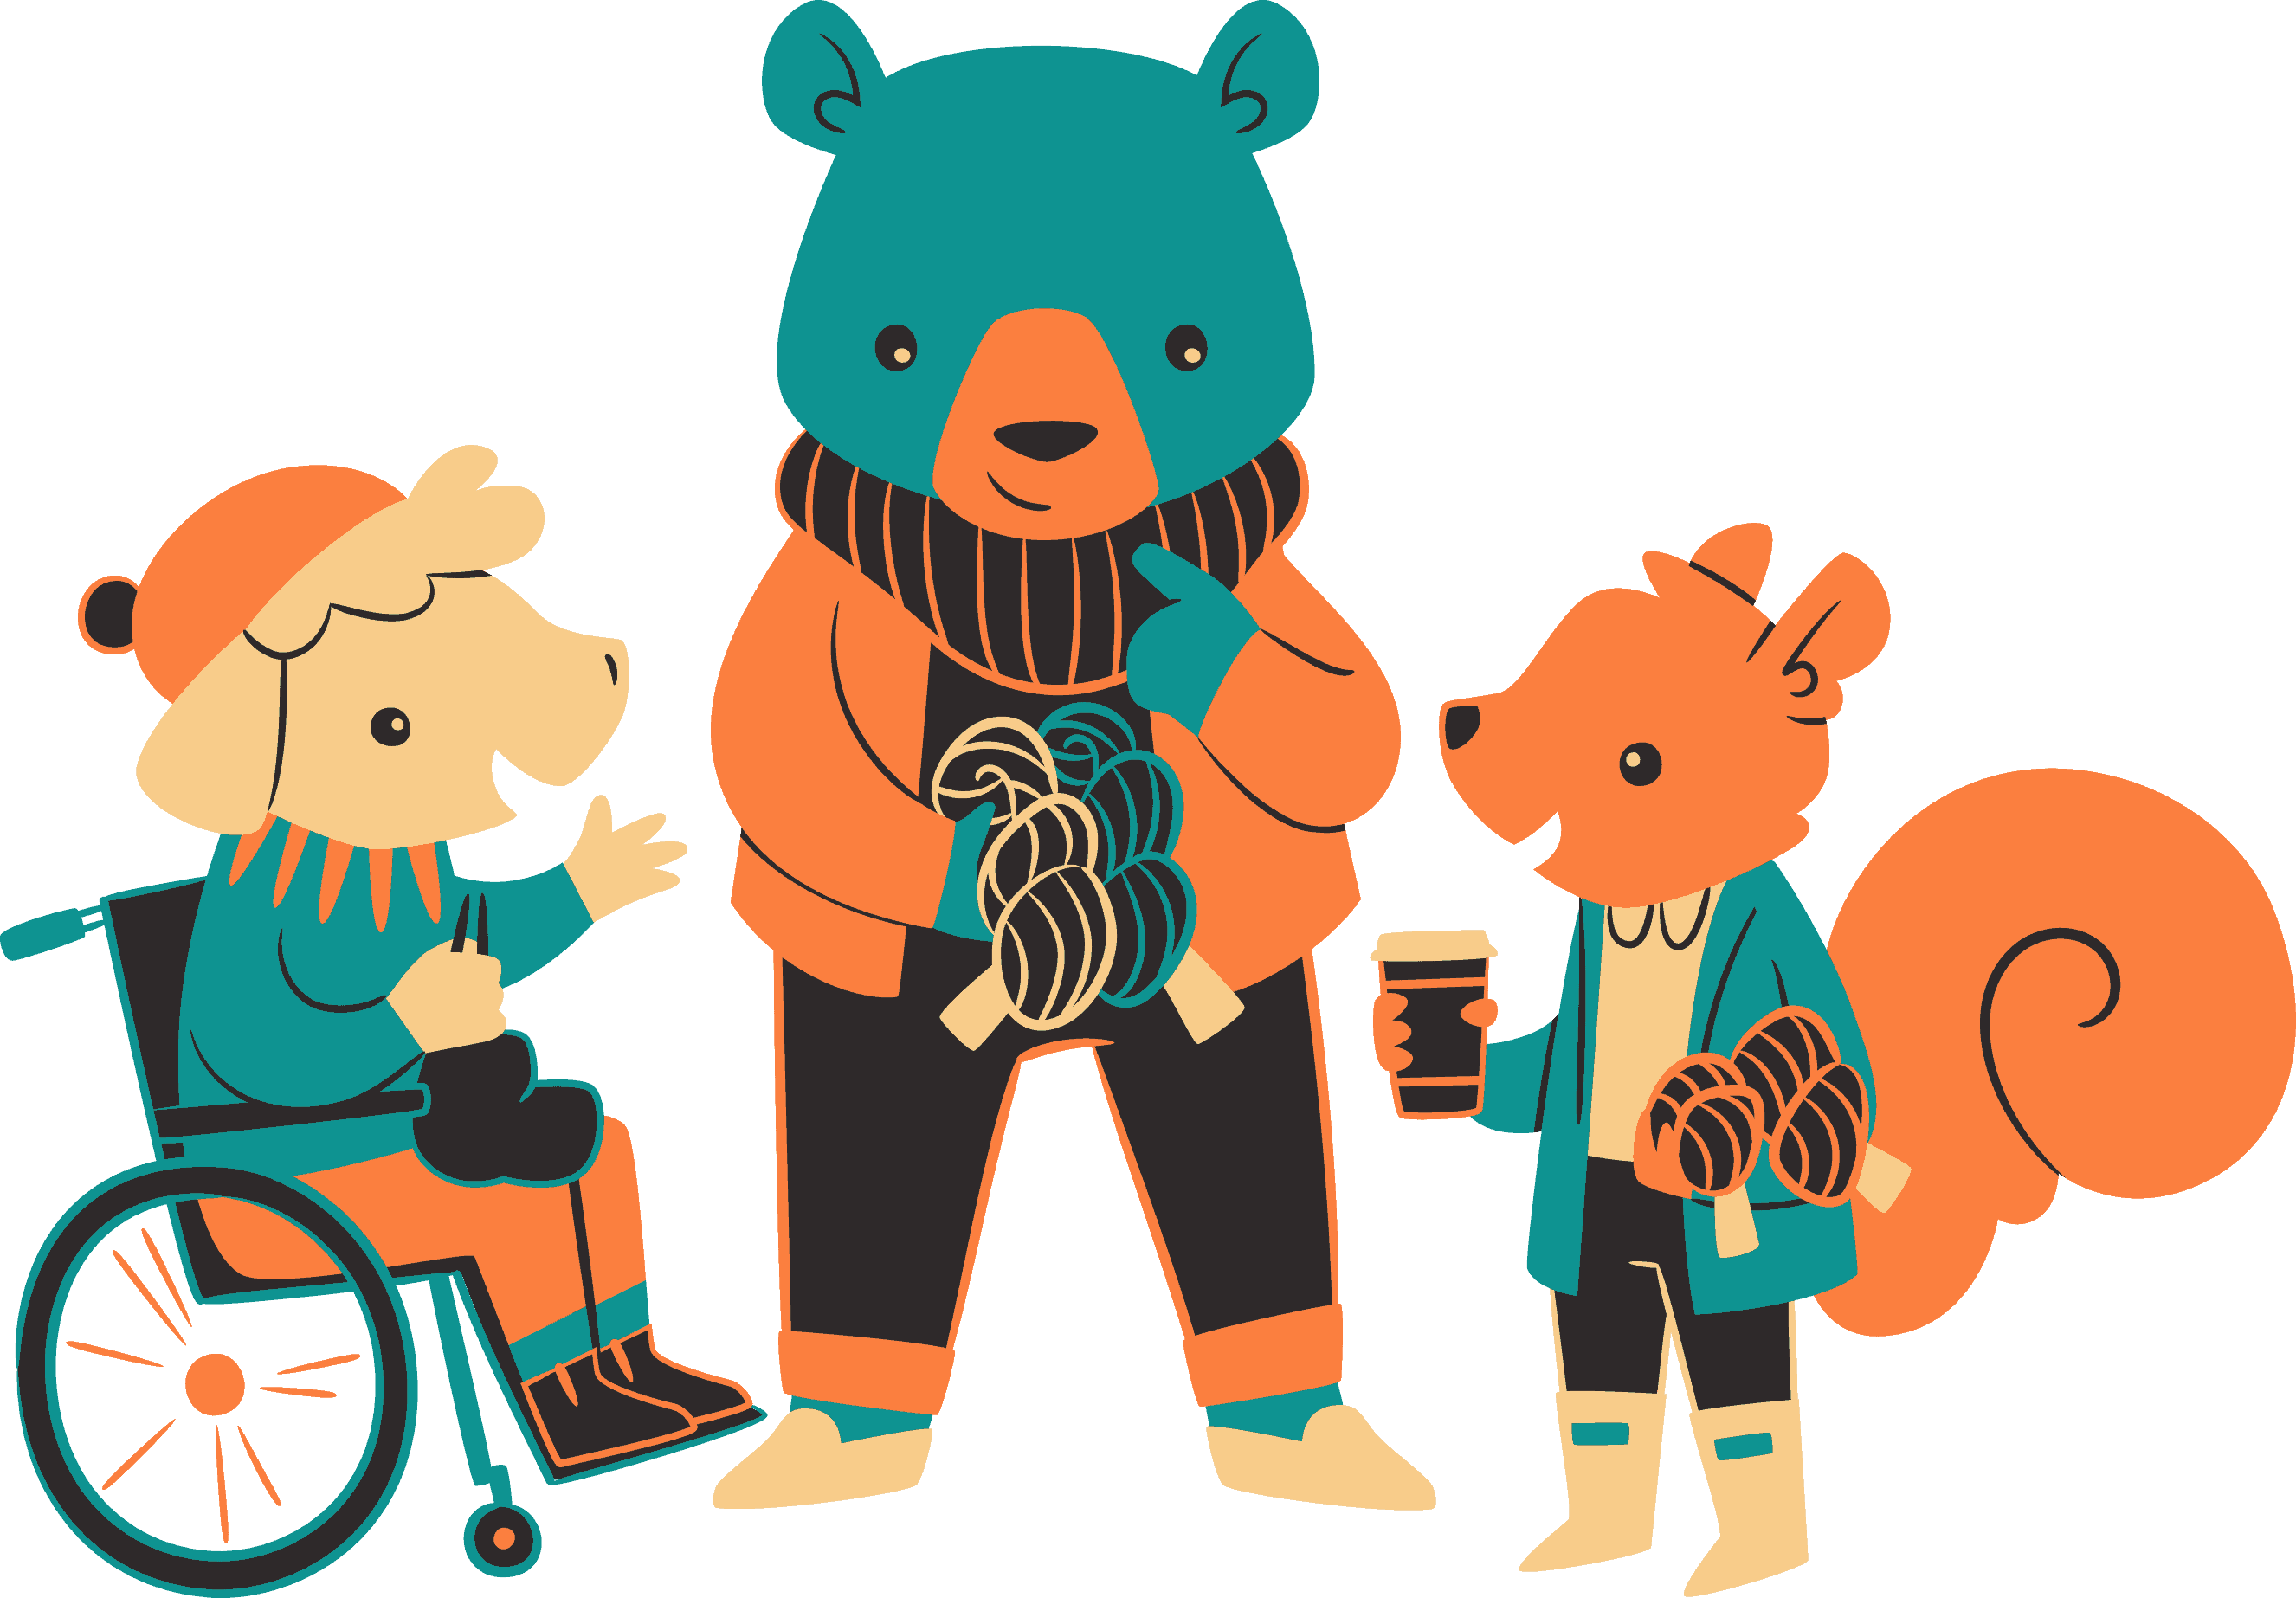 An illustration of a sheep in a wheelchair, a bear holding yarn and a squirrel.